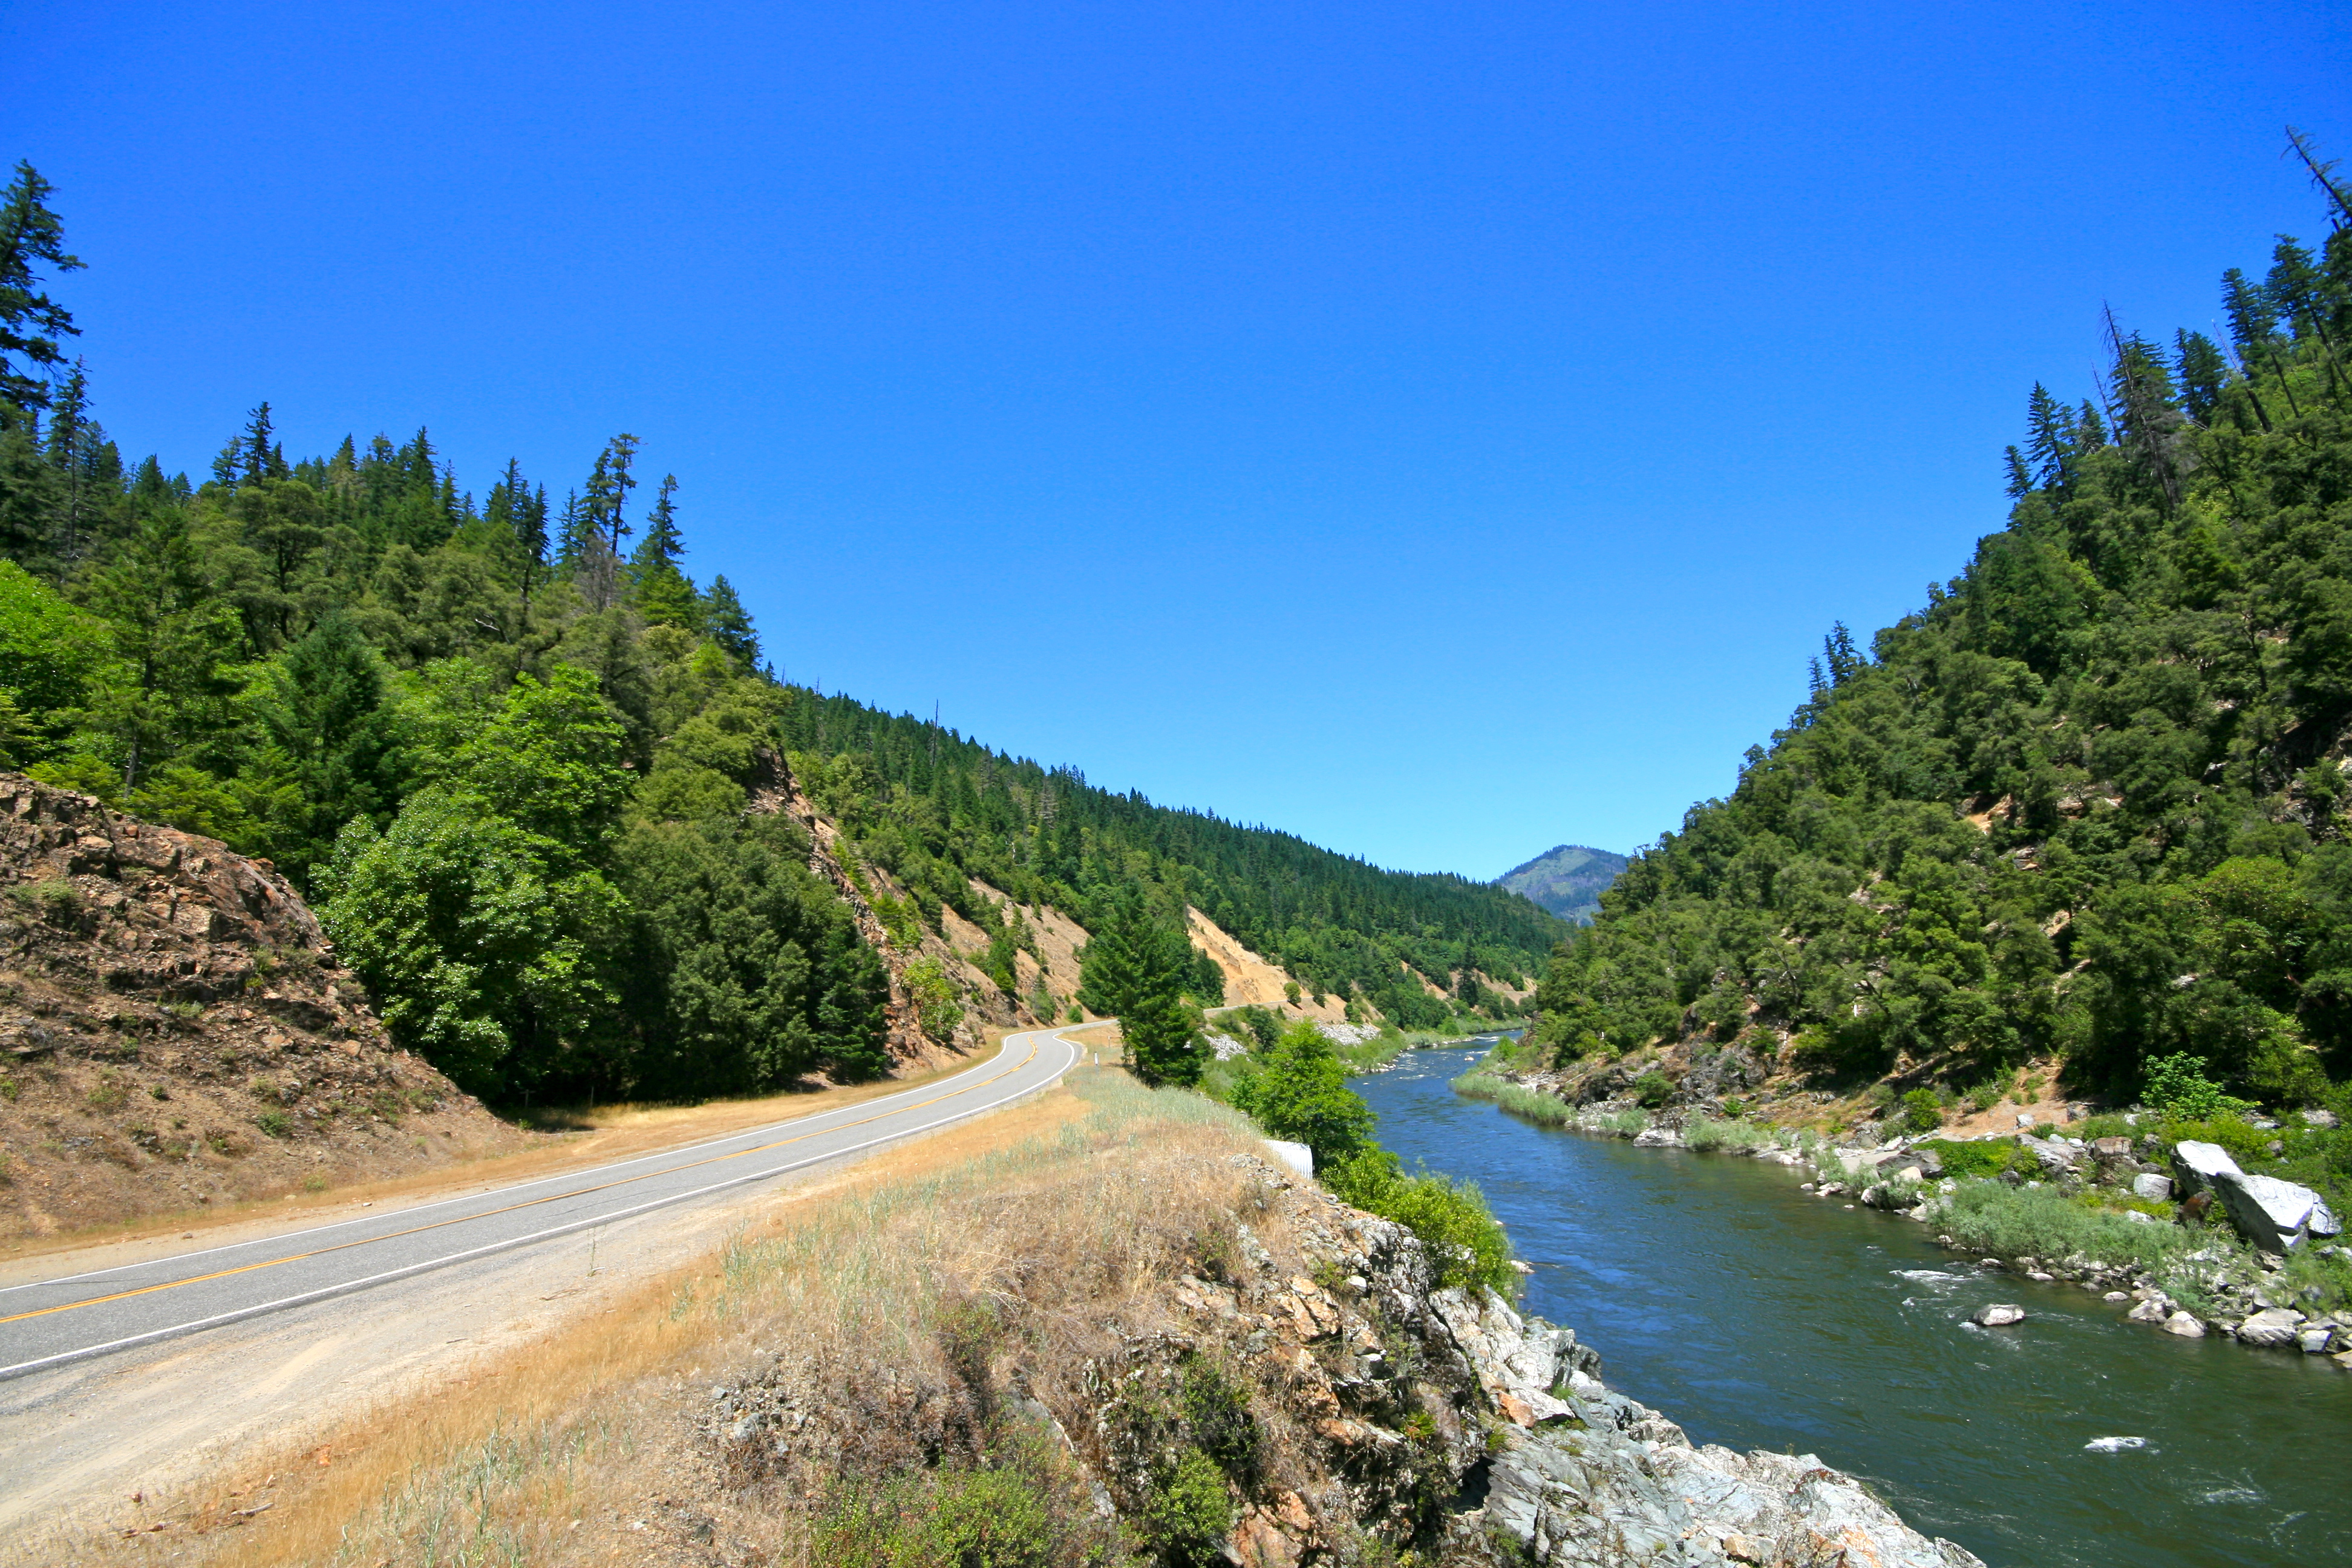 free online dating & chat in klamath river Chat now cancel reservation pet friendly campgrounds in klamath, ca they have 33 acres of perimeter camp, including trails and river banks, for free-running.